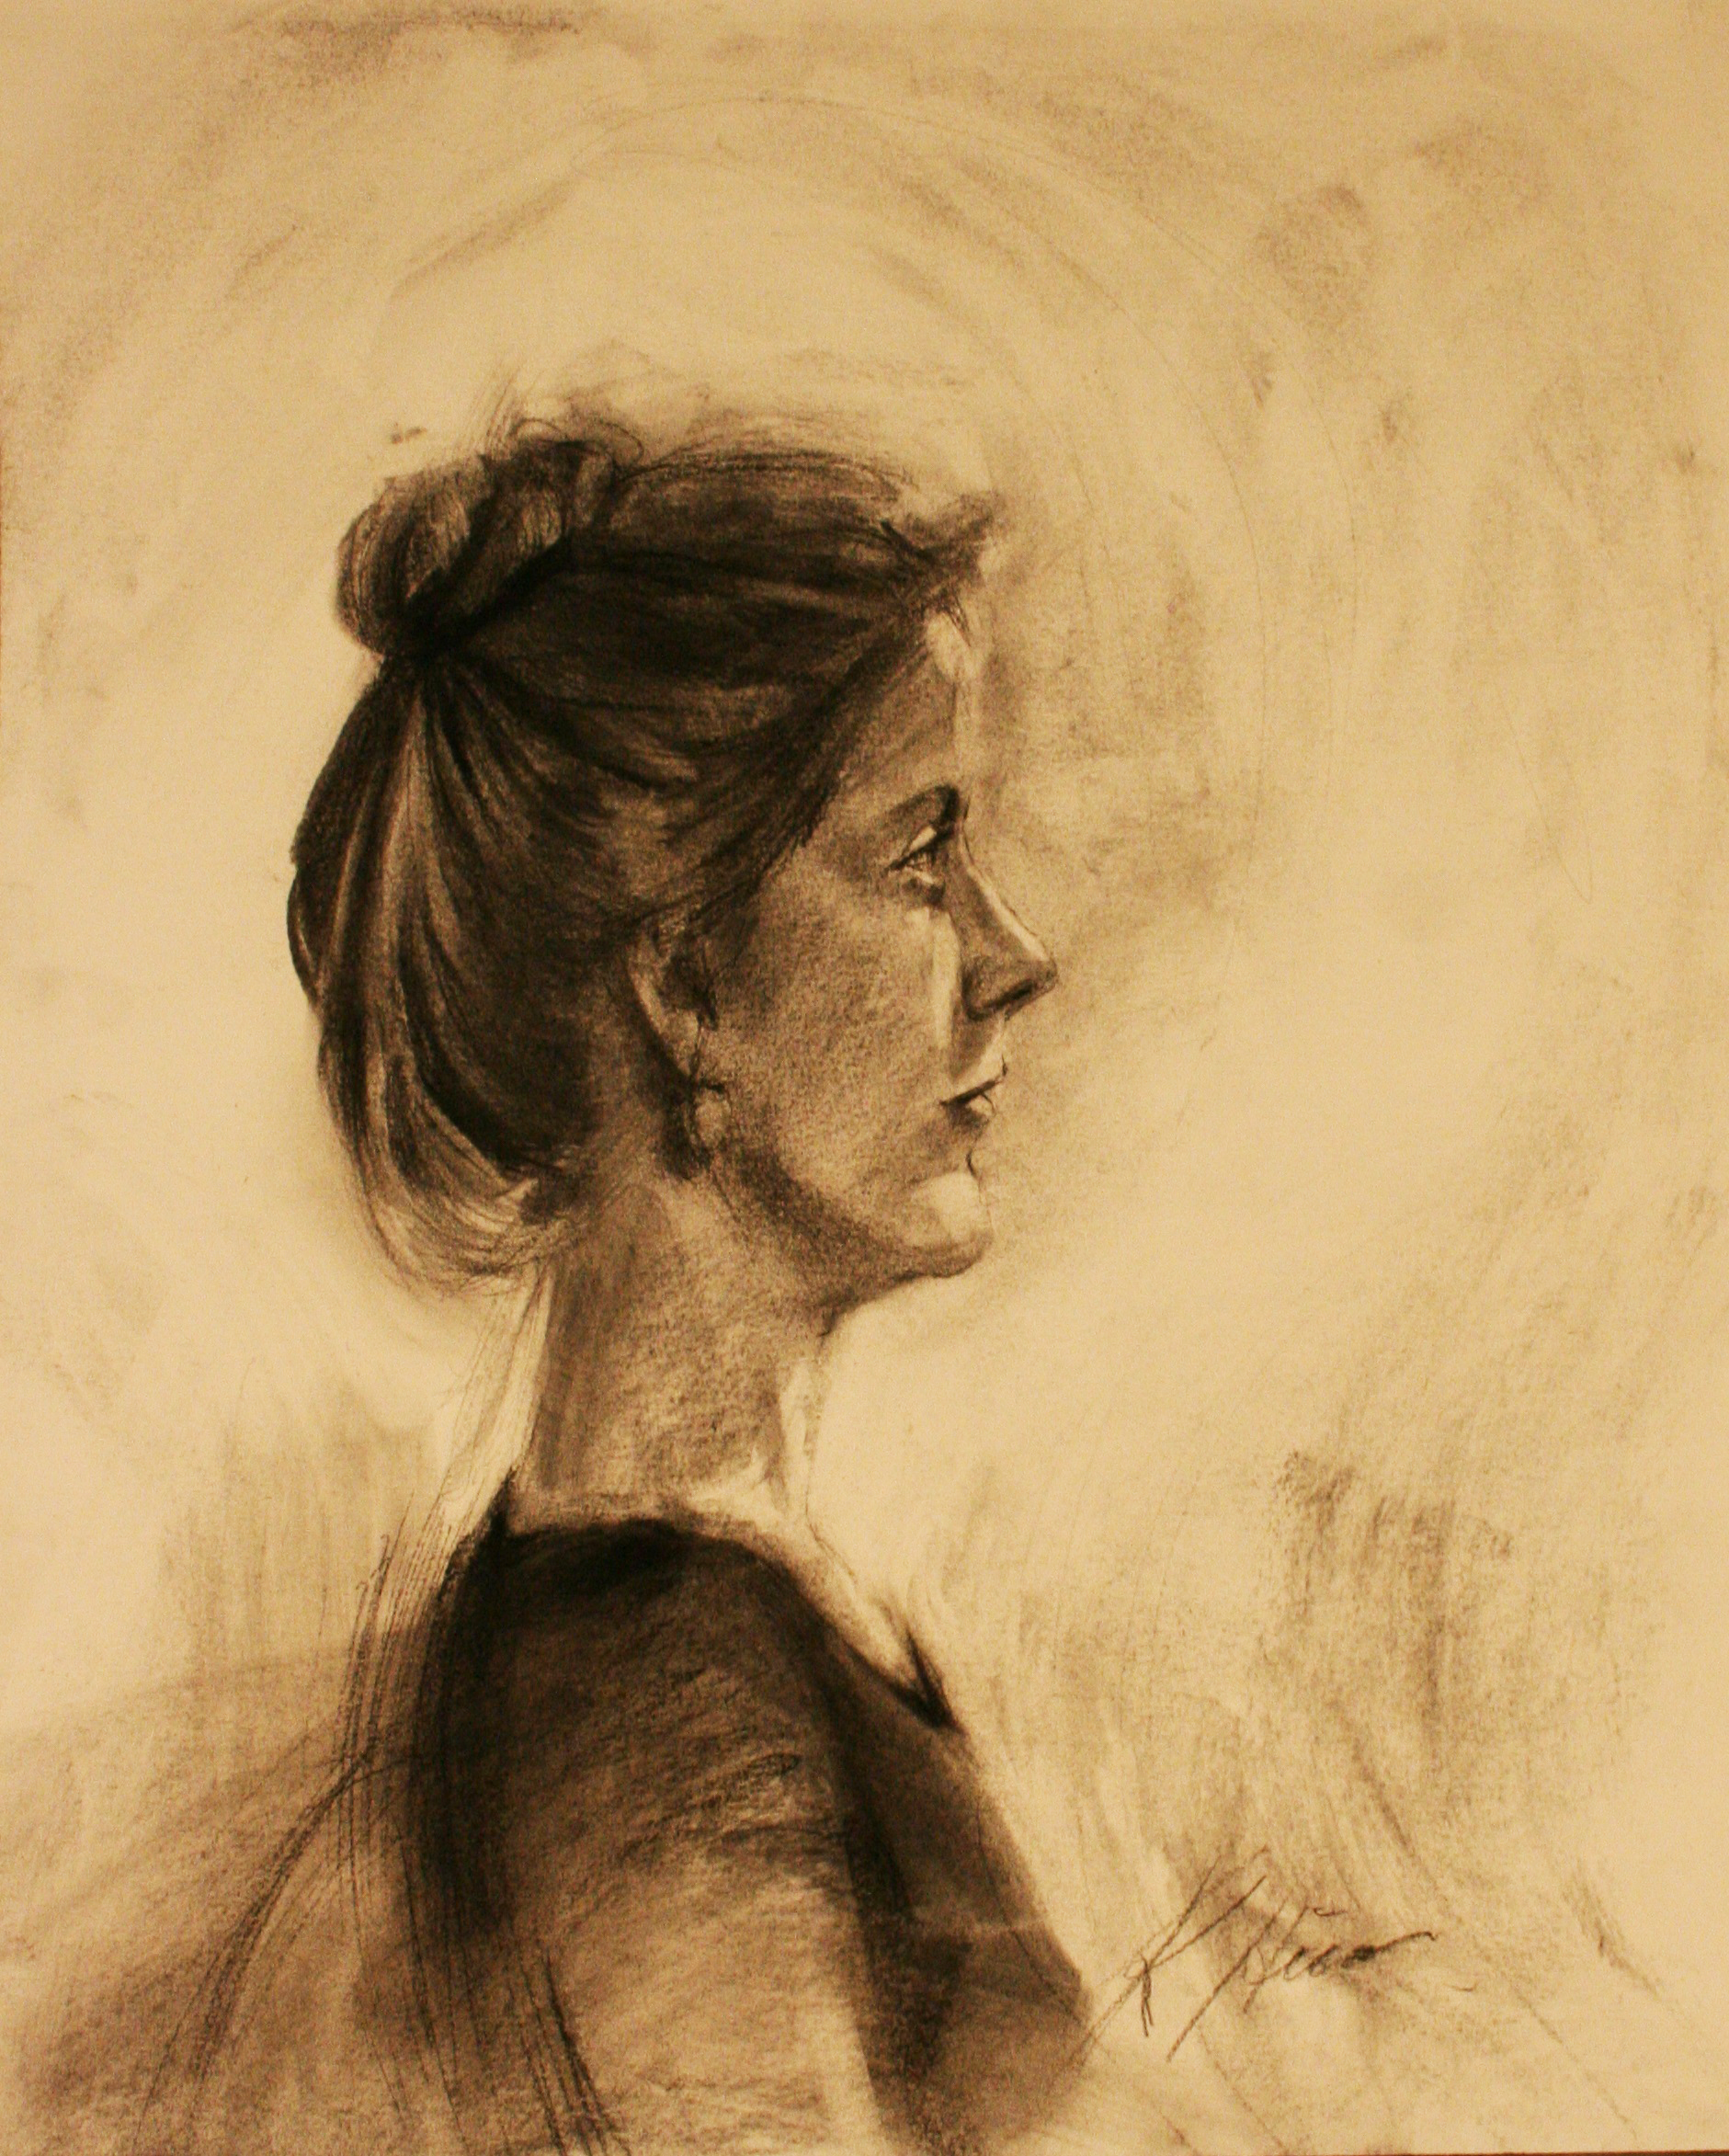 Kathryn Heim did this hour and a half charcoal drawing.